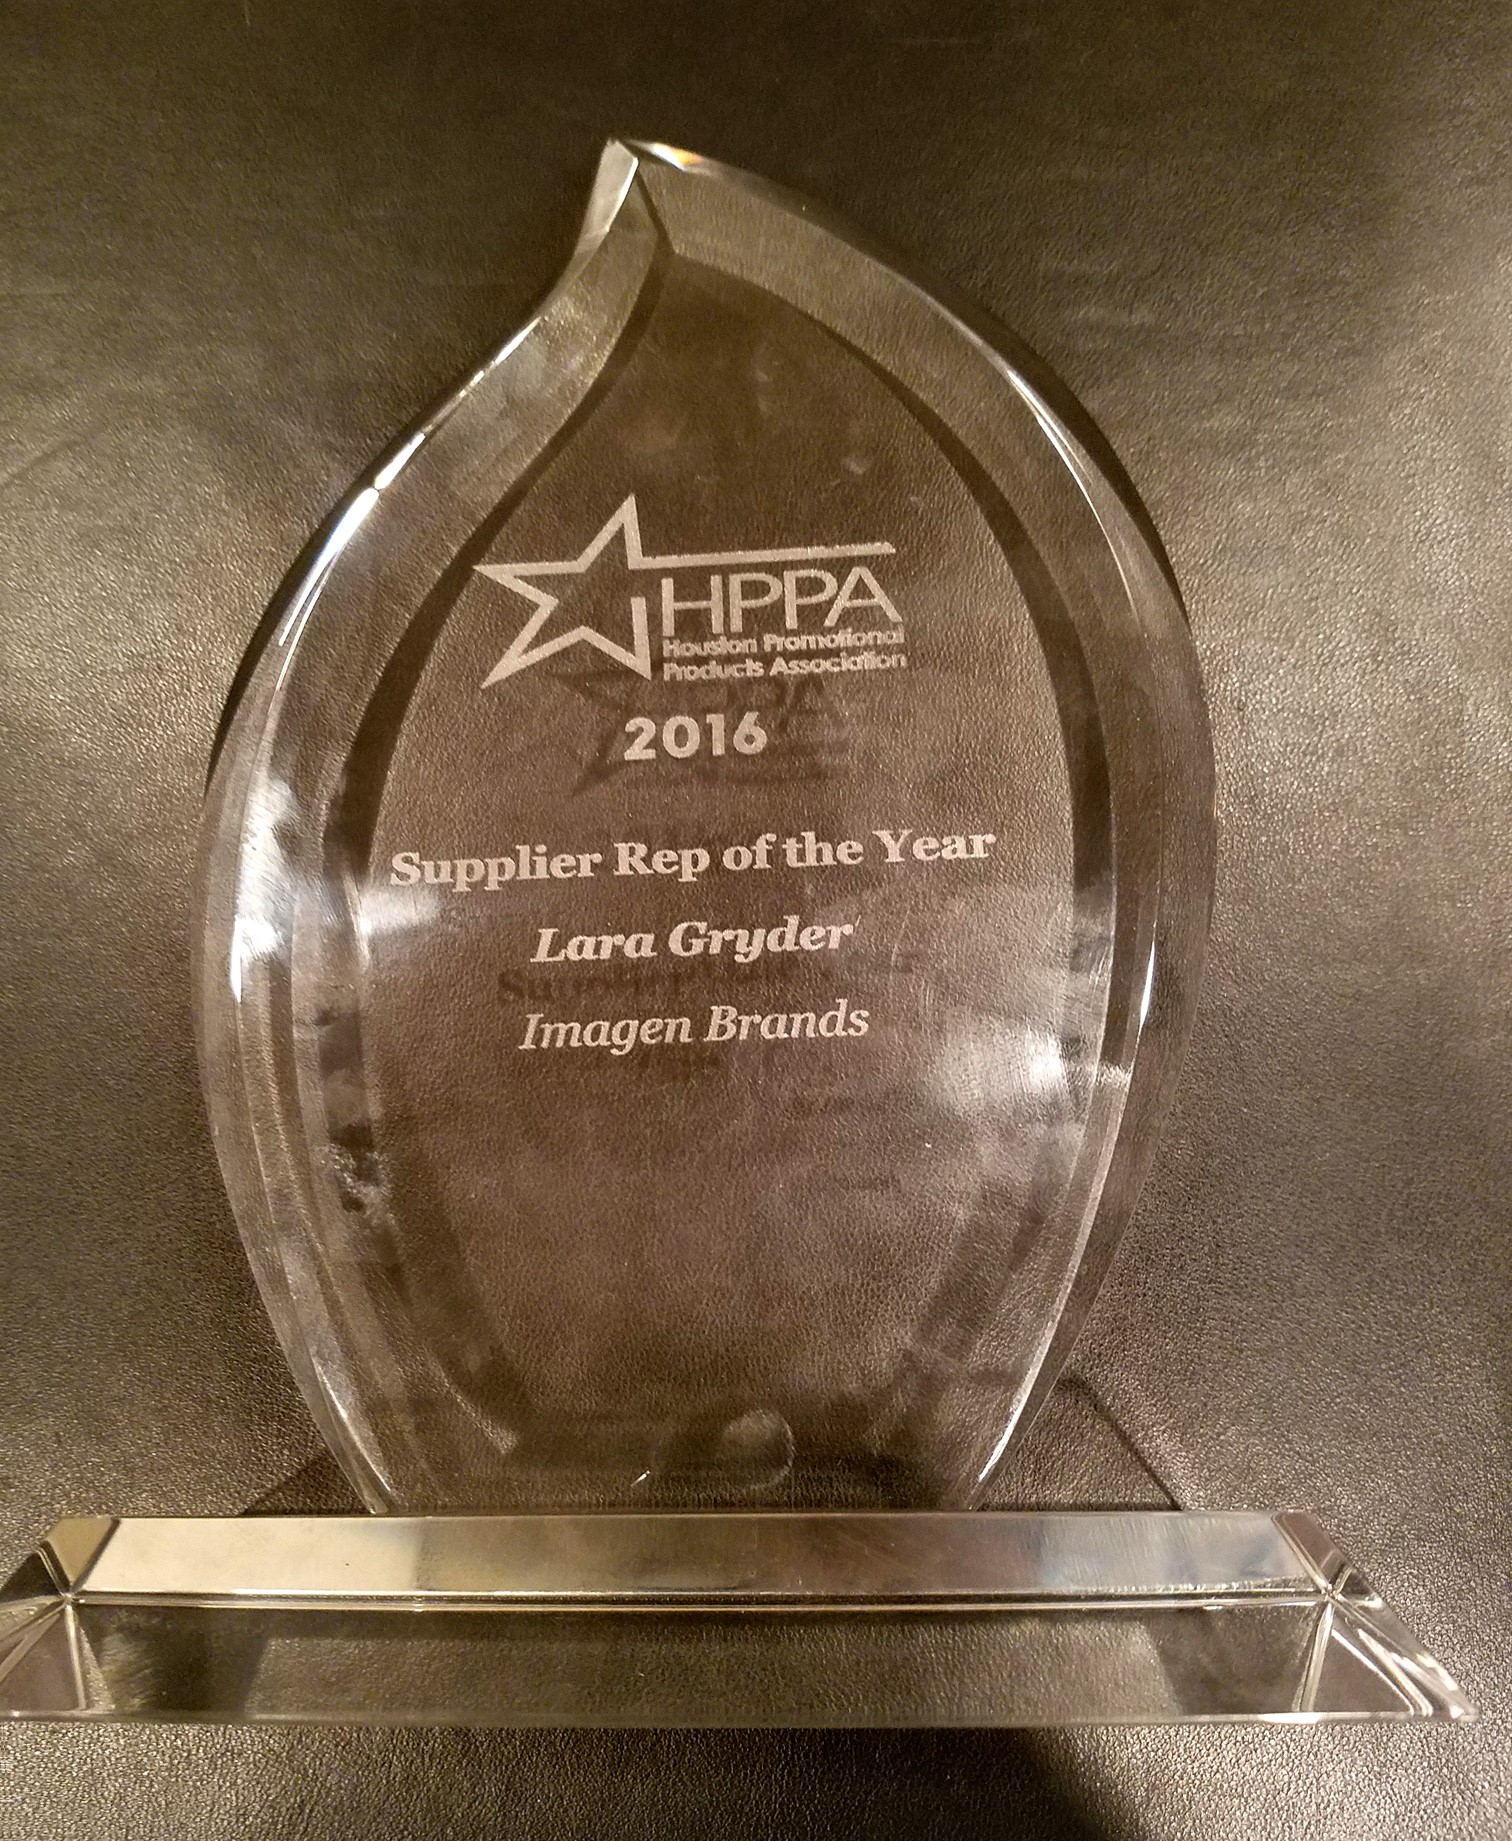 HPPA Suppler Rep of the Year